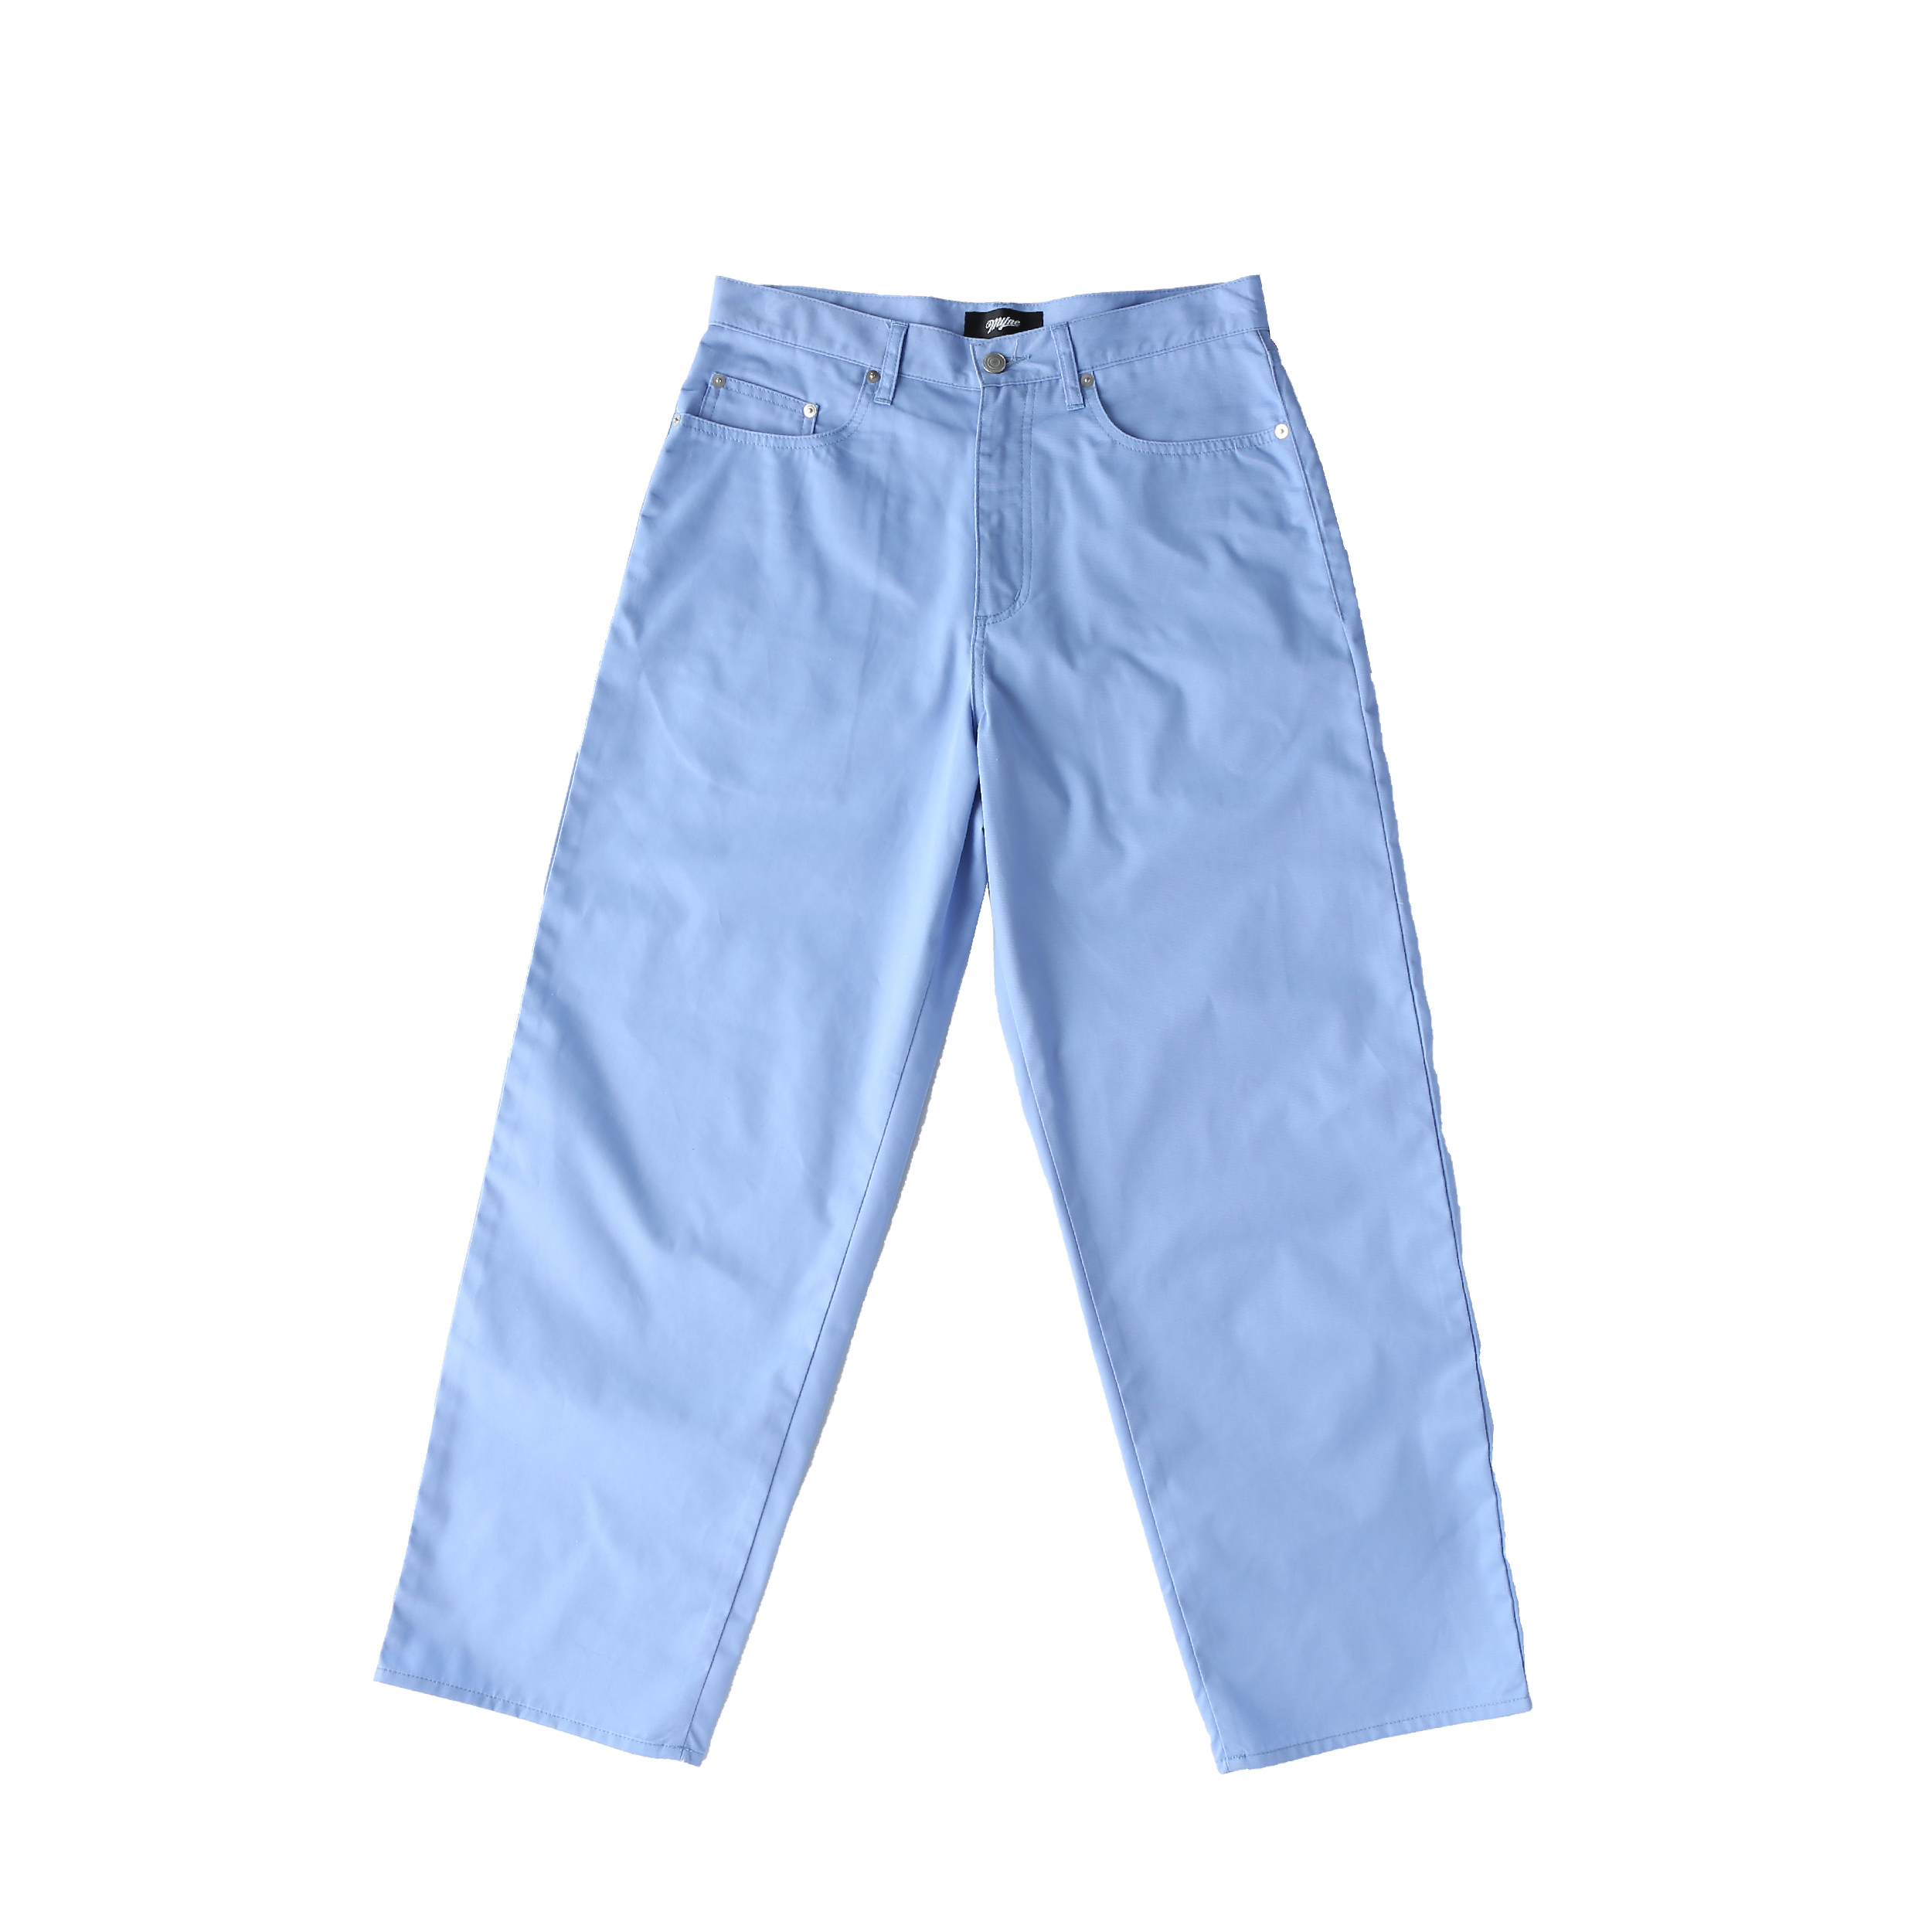 Wappen baggy pants / BLUE - 画像1